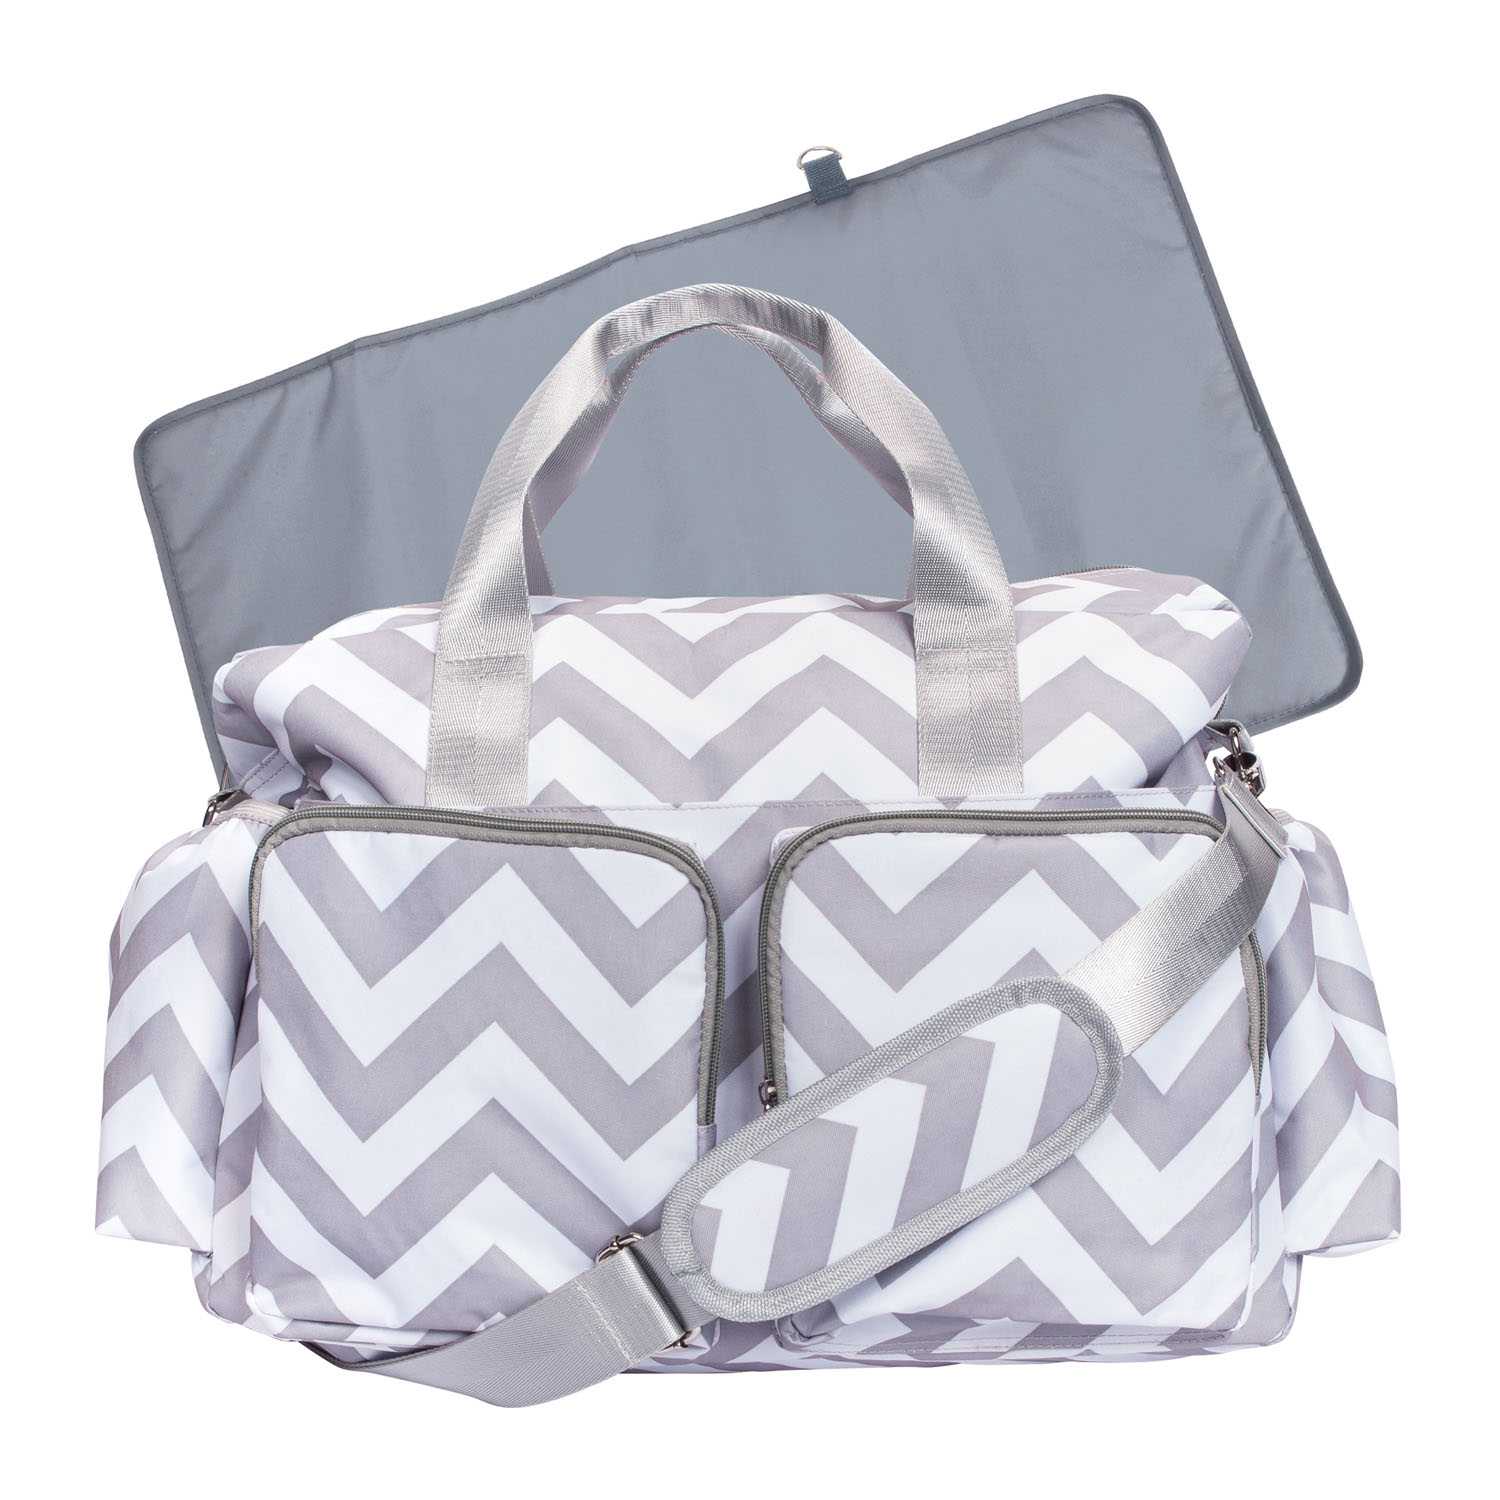 Trend Lab Chevron Deluxe Duffle Diaper Bag with Changing Pad, White/Gray